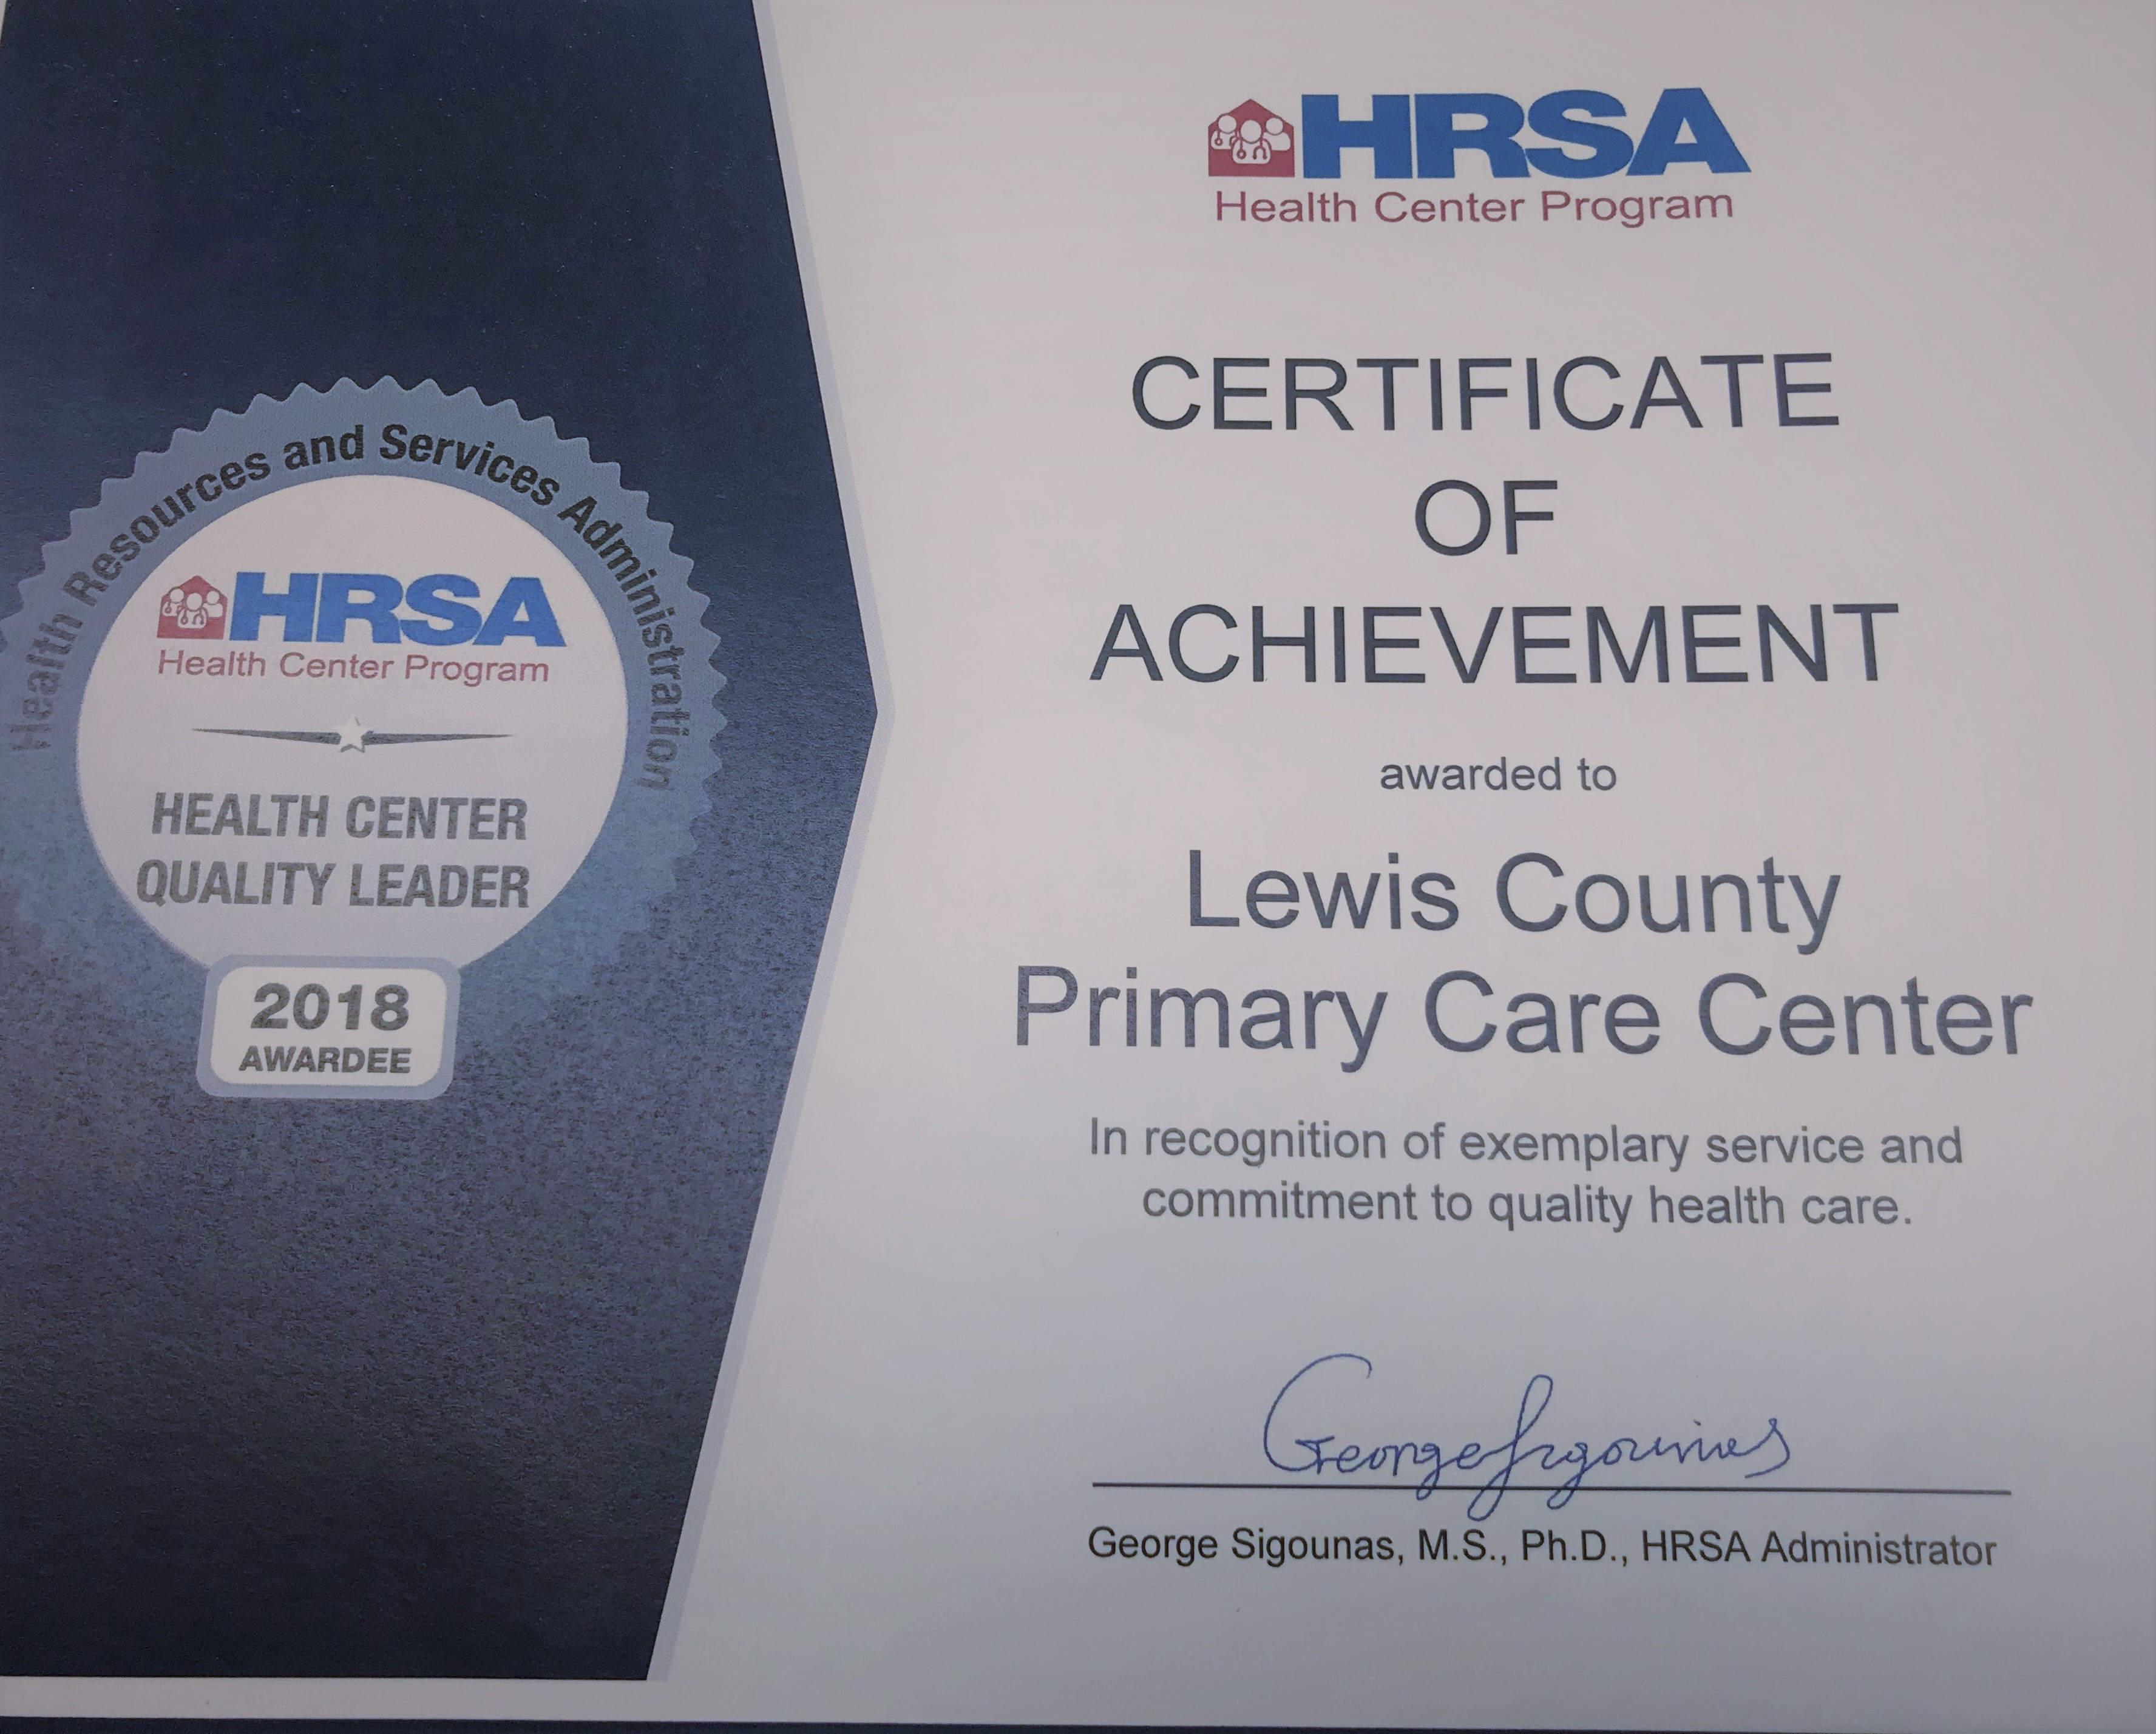 PrimaryPlus Receives 2018 Health Center Quality Leader Award News